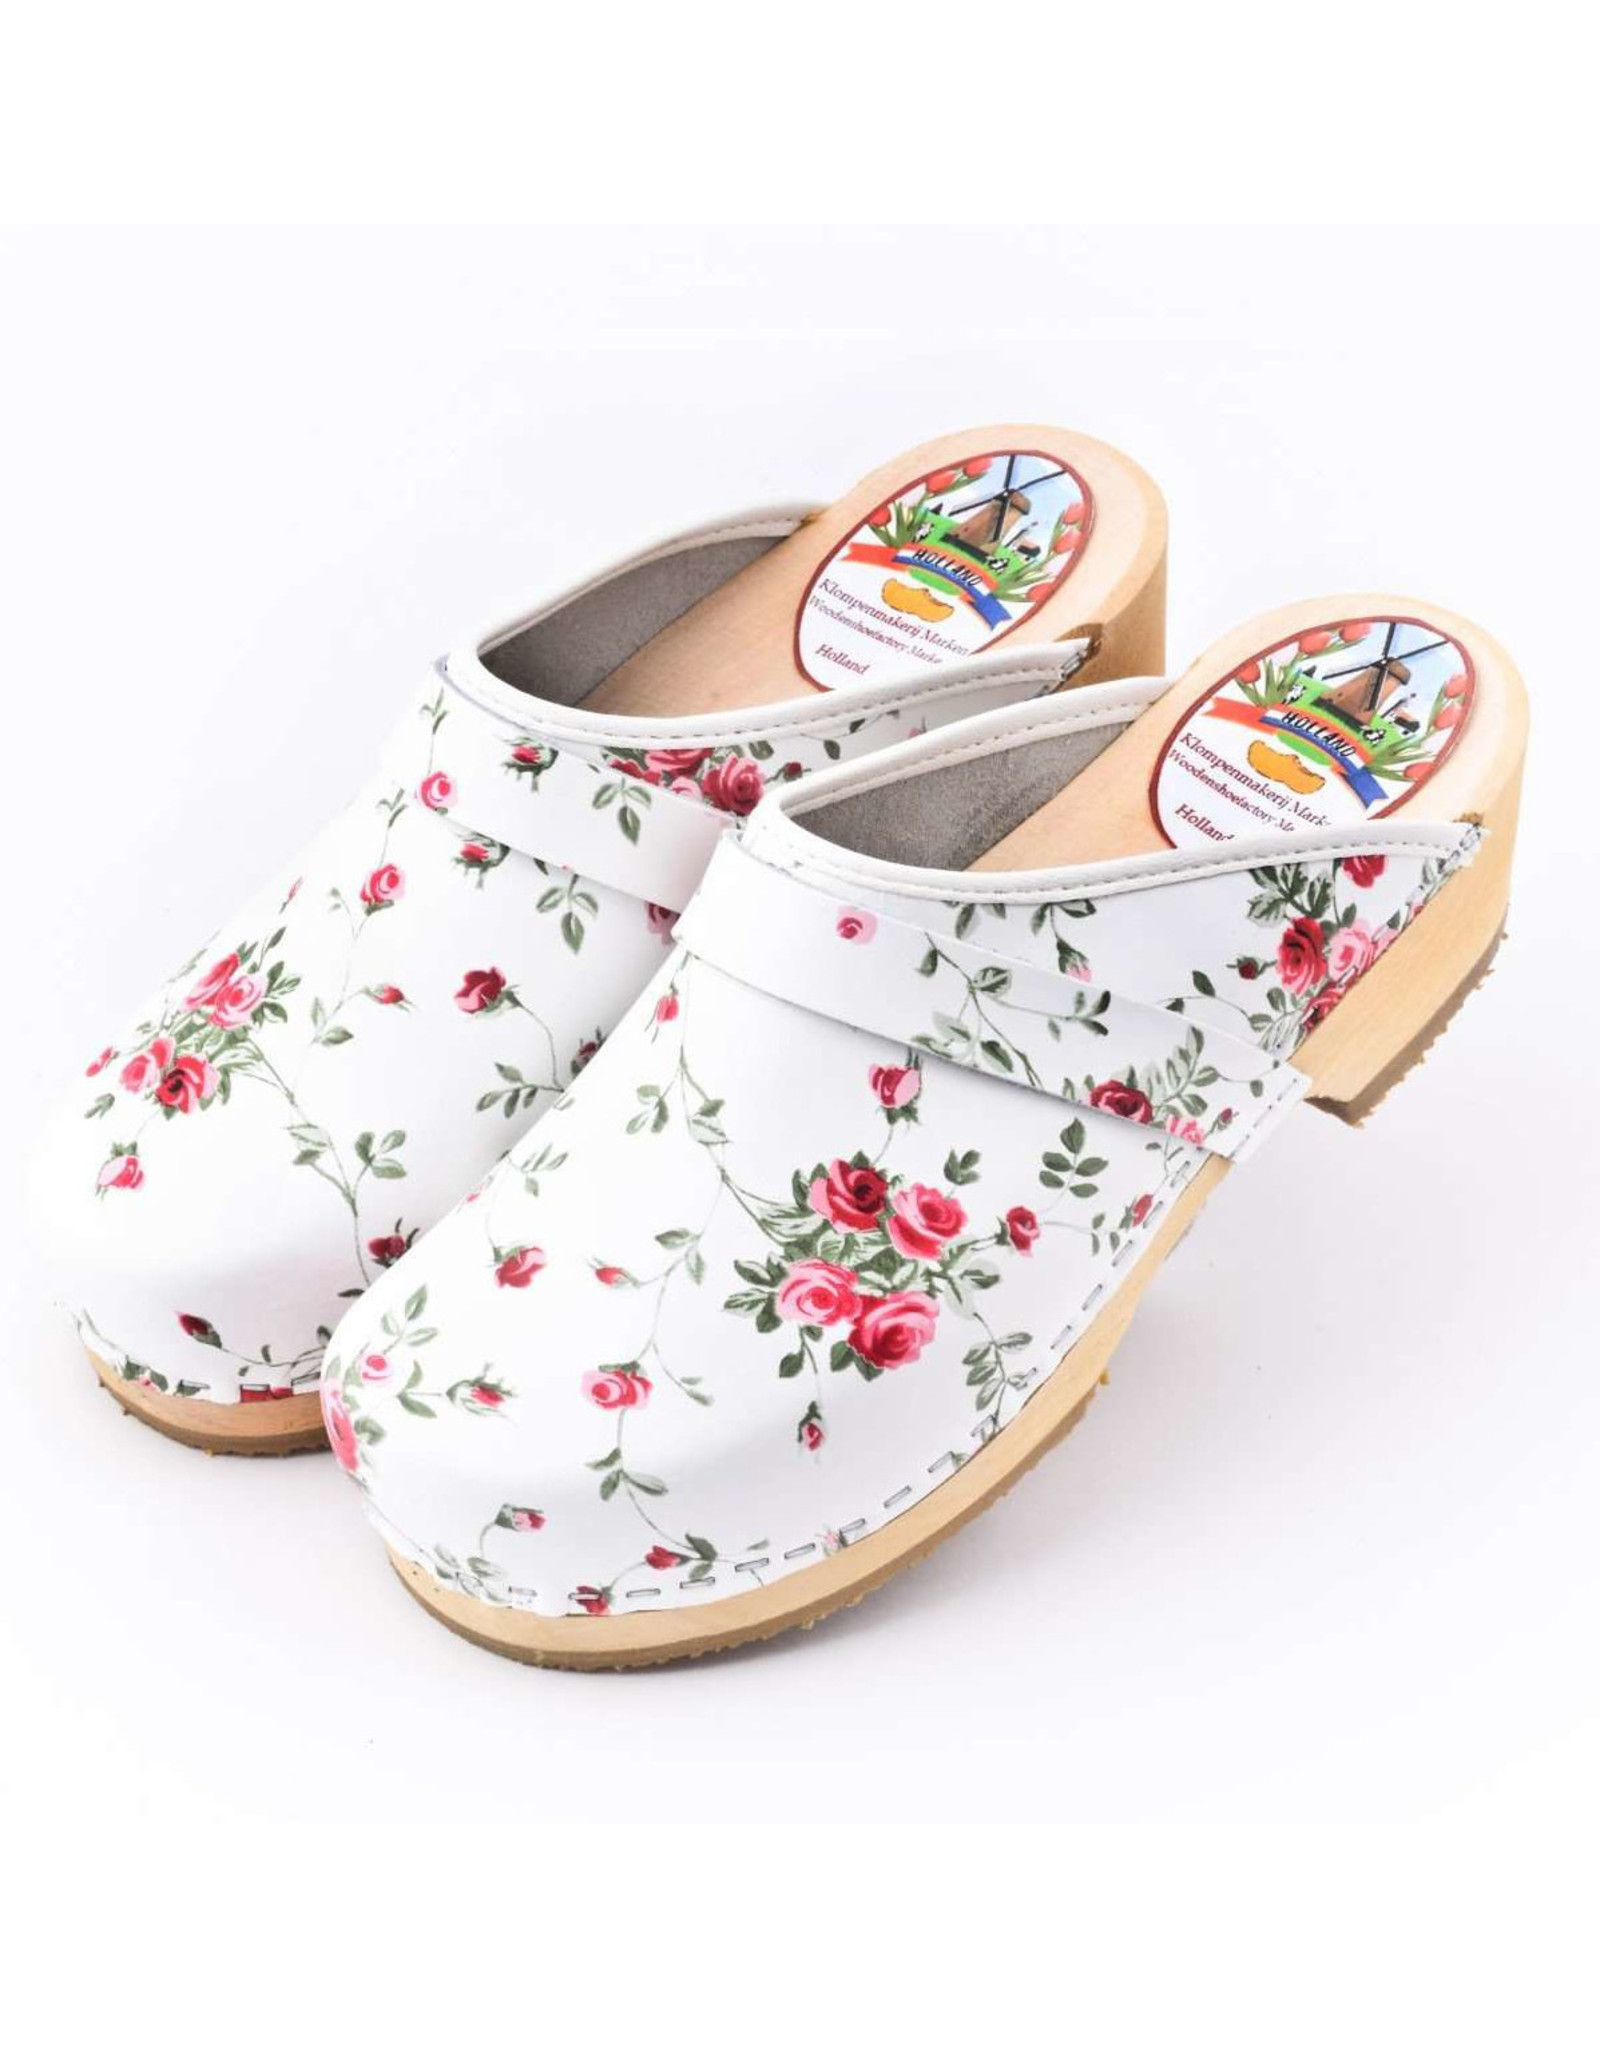 Simson Leather Clogs, Simson, White with Flowers, Orthepedic Footwear